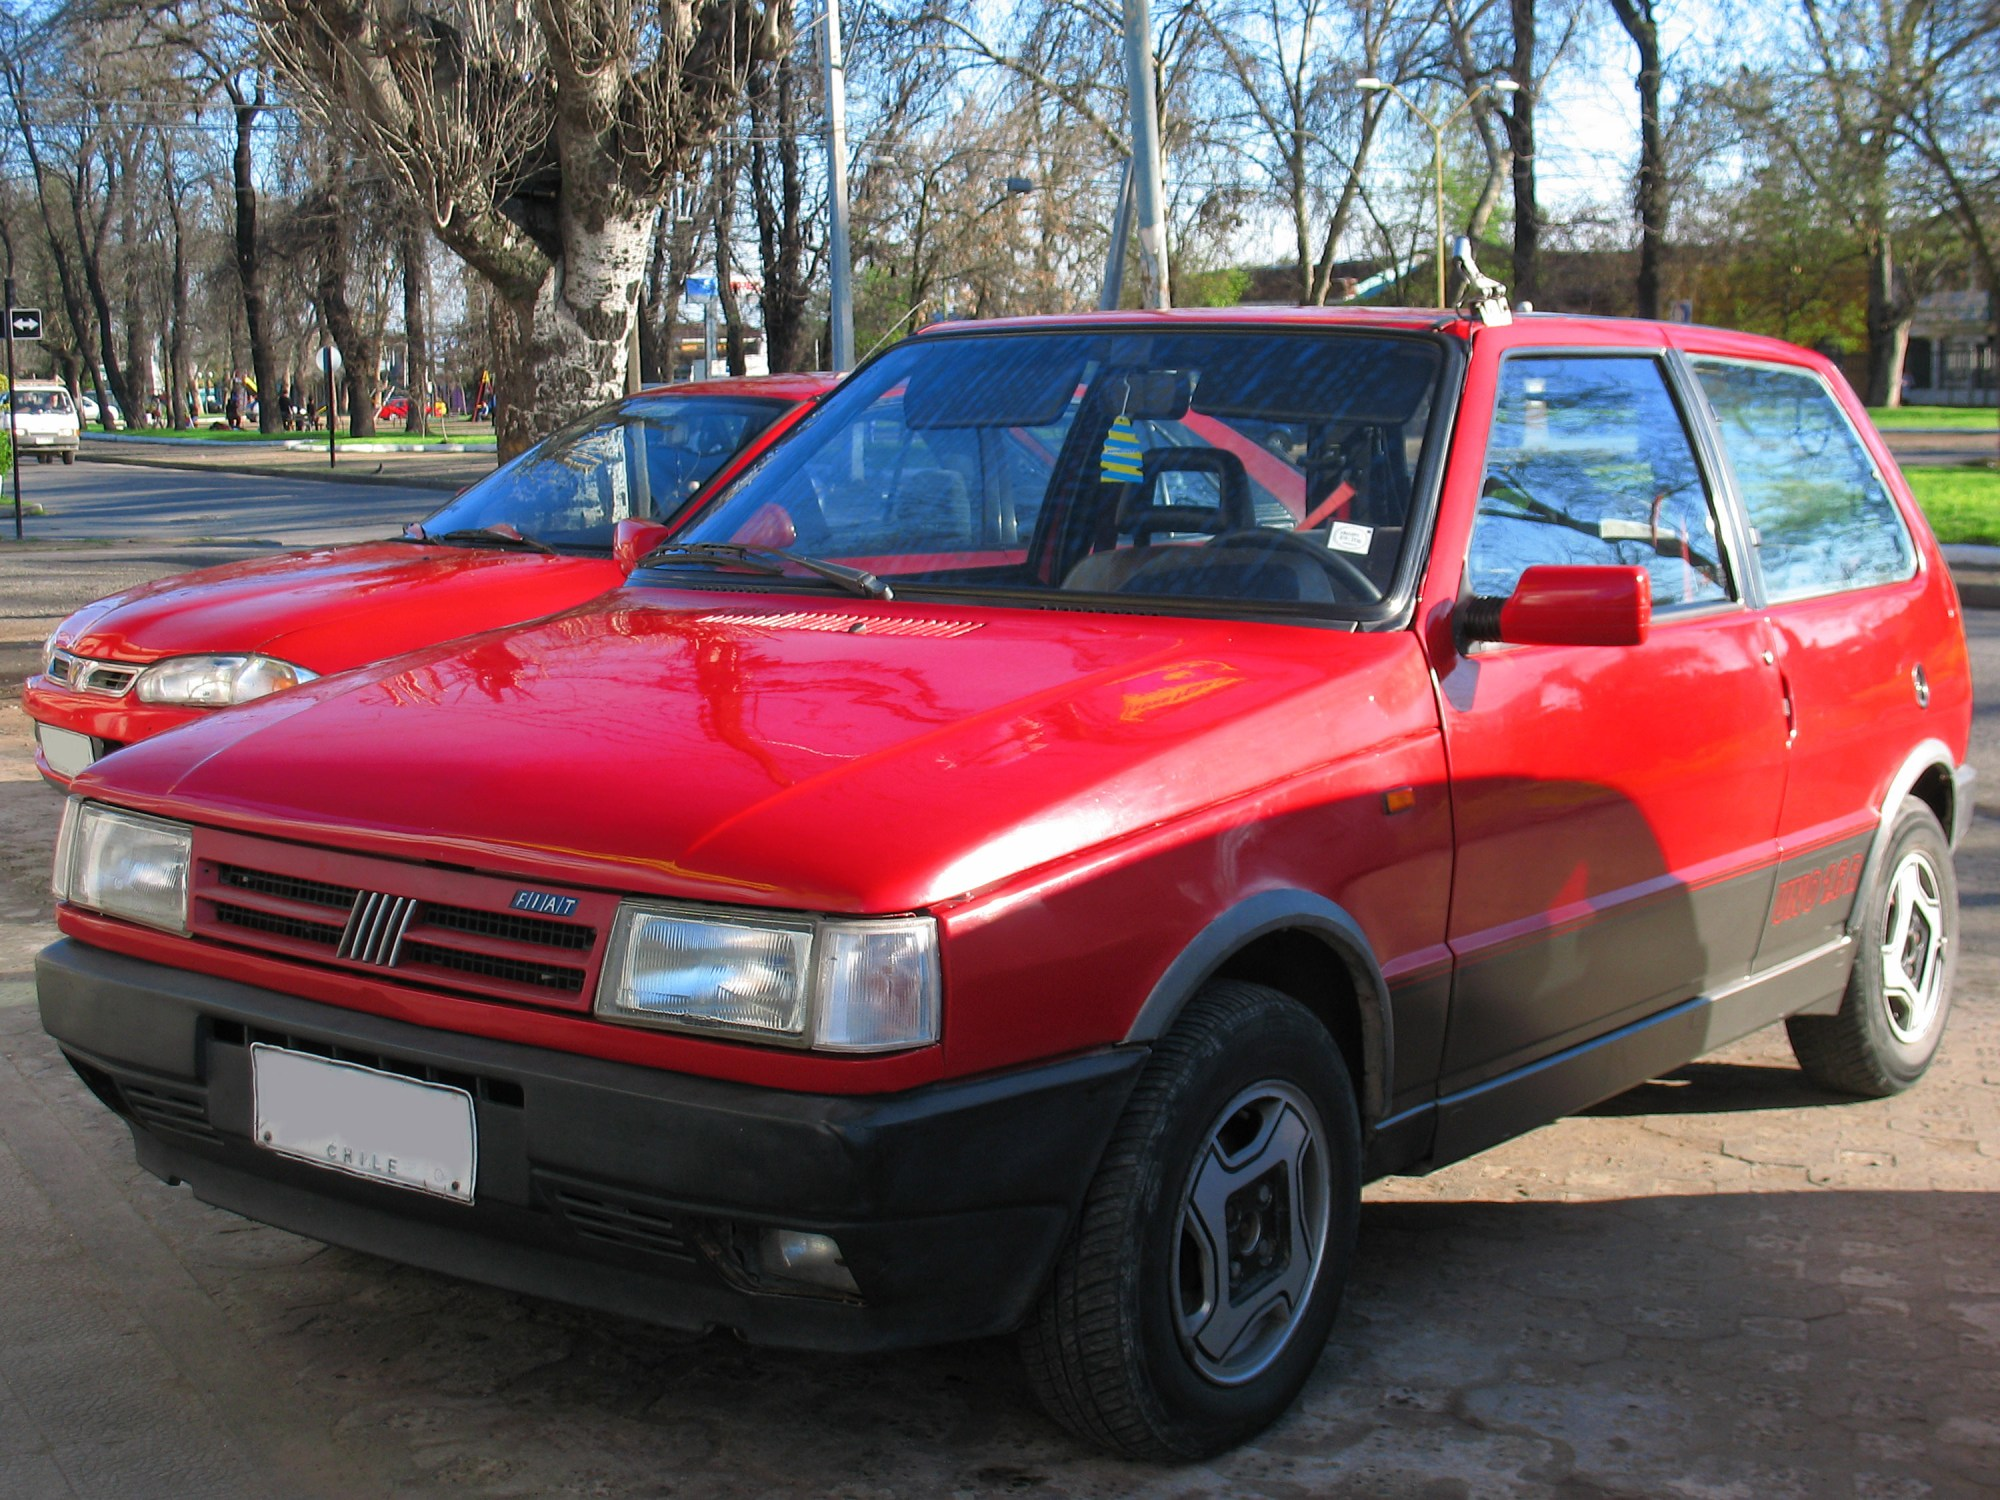 hight resolution of file fiat uno 1 6 r 1992 16983903860 jpg